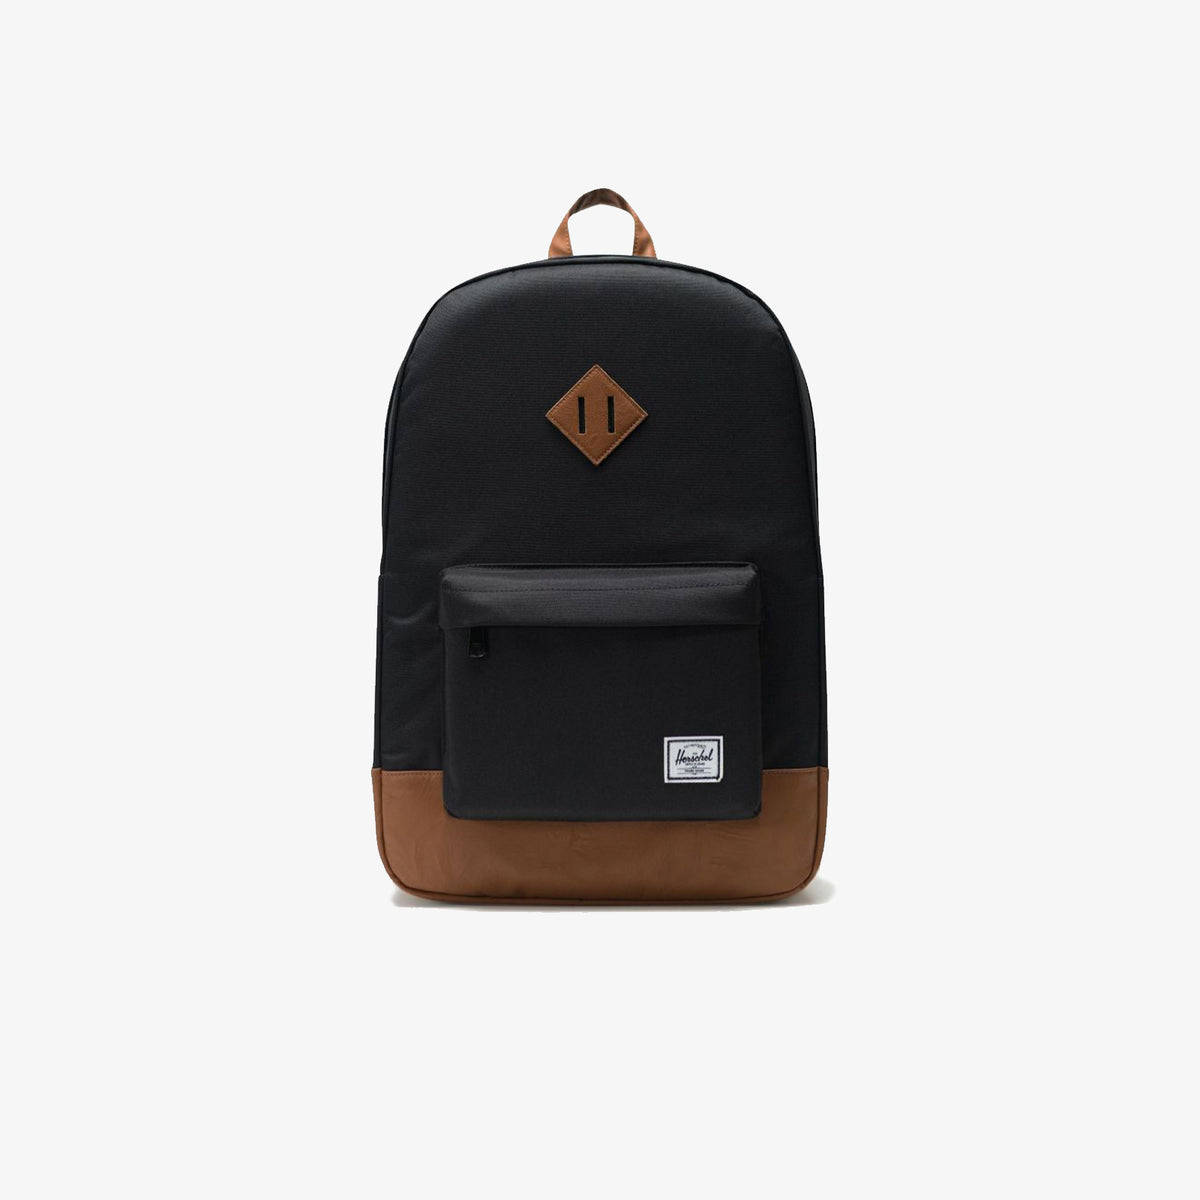 Heritage Backpack - Black/Tan